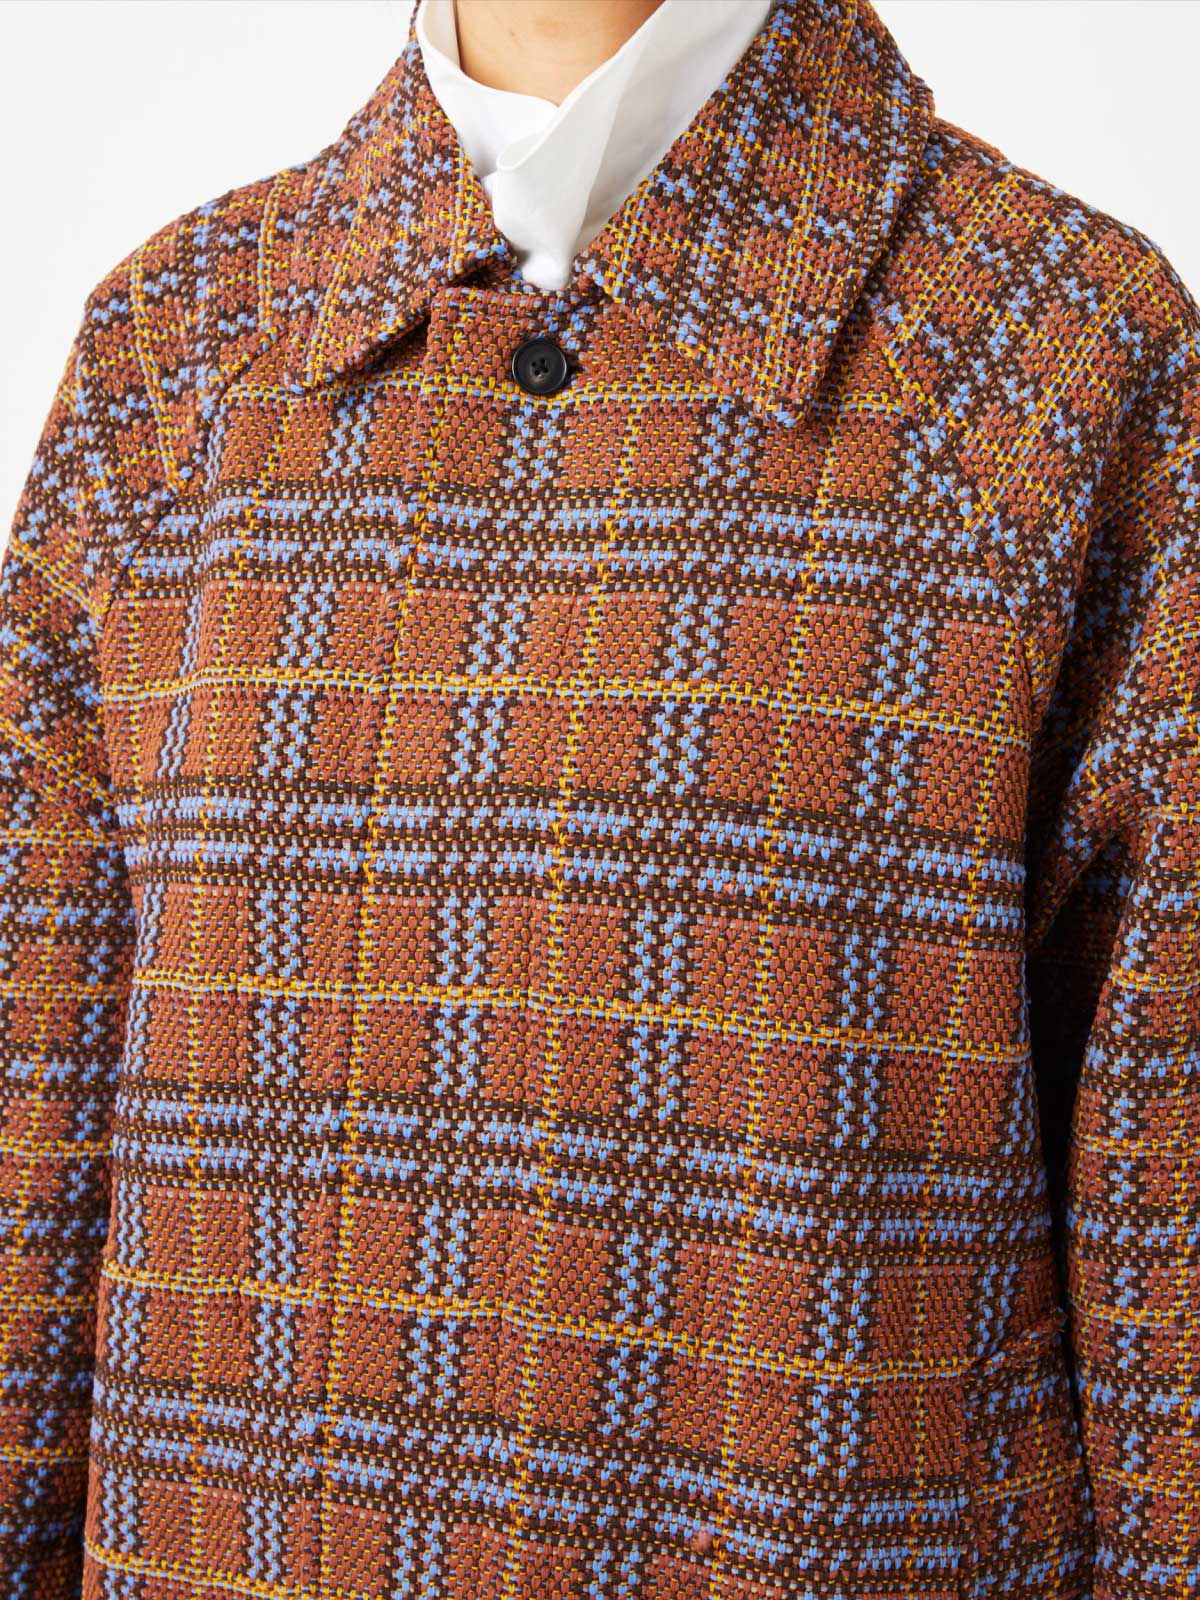 RETRO CHECK TWEED COAT5